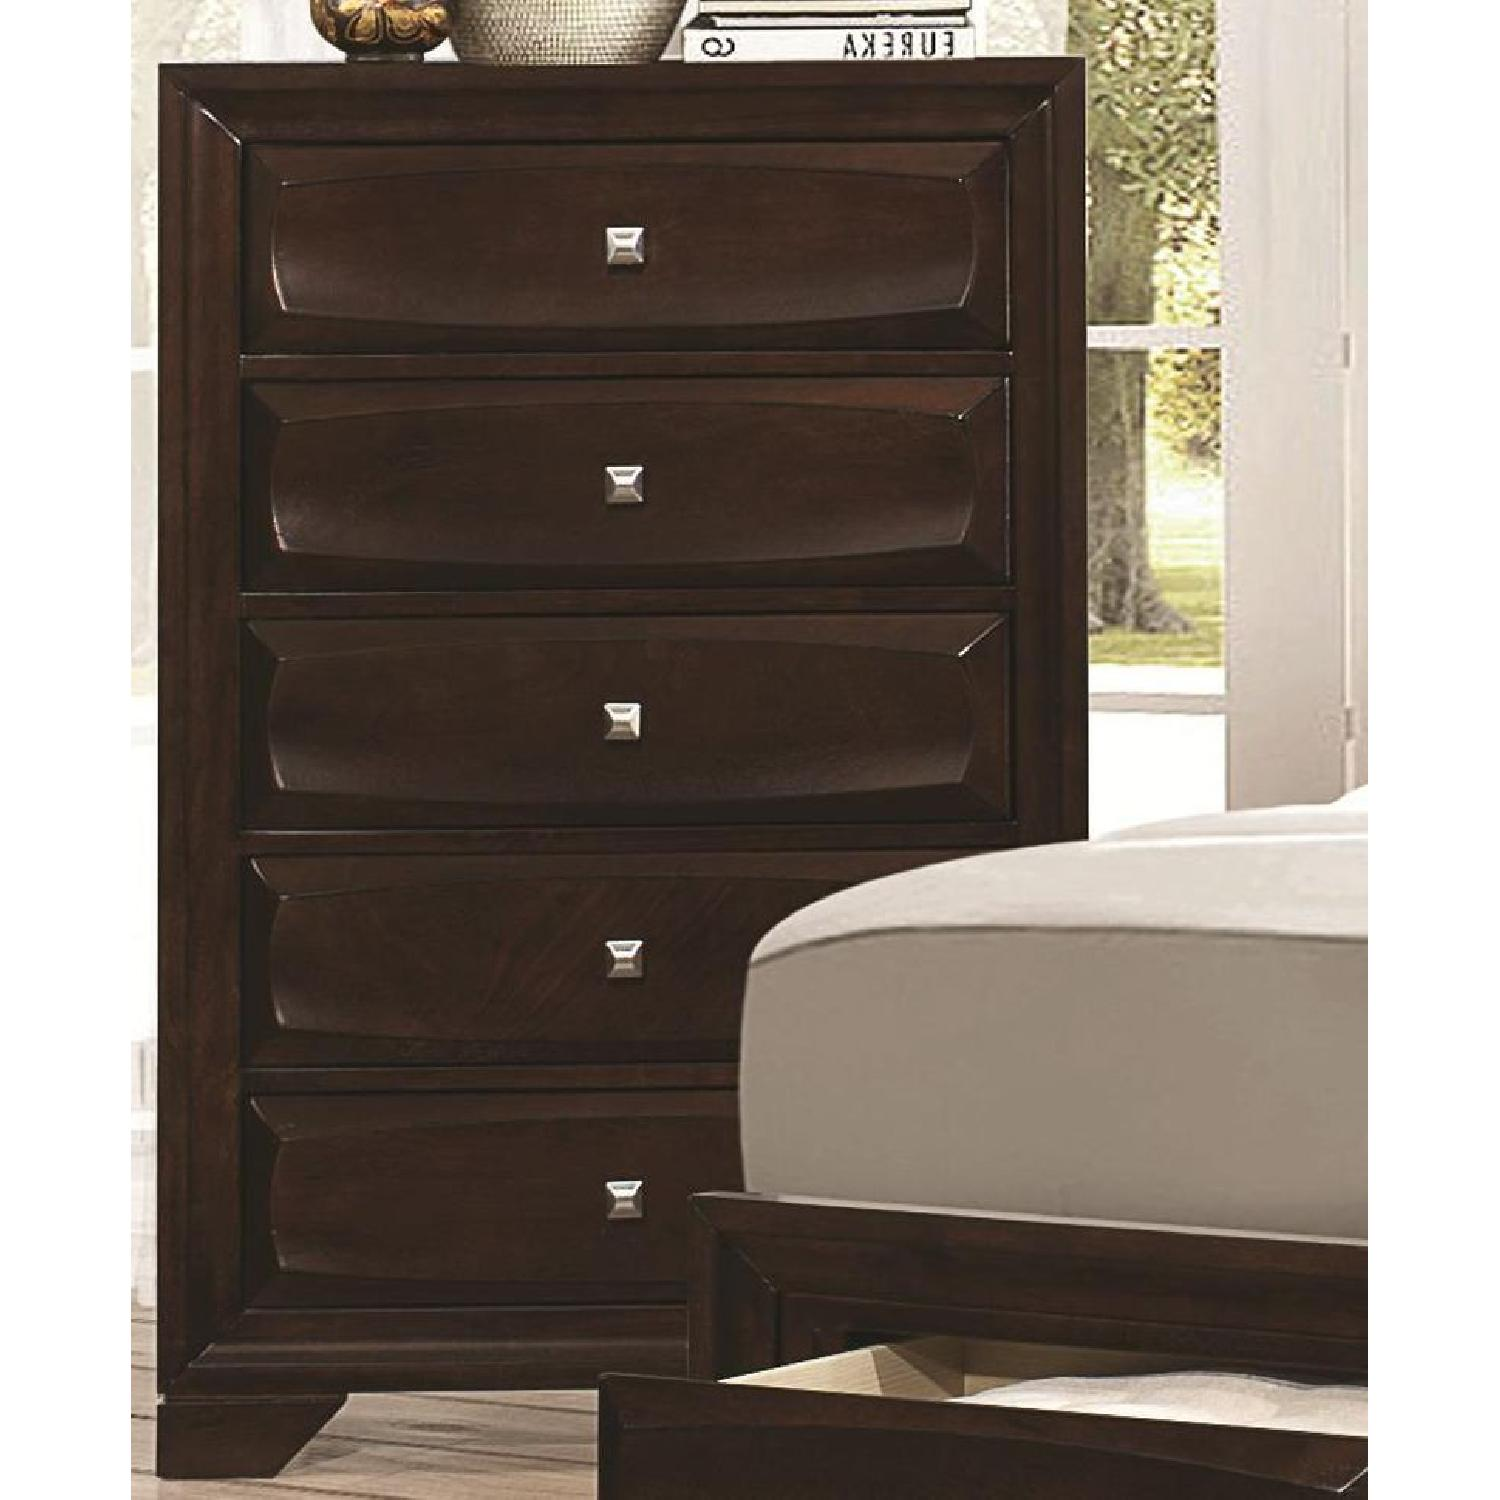 Chest in Cappuccino w/ Drawer Front Design - image-3